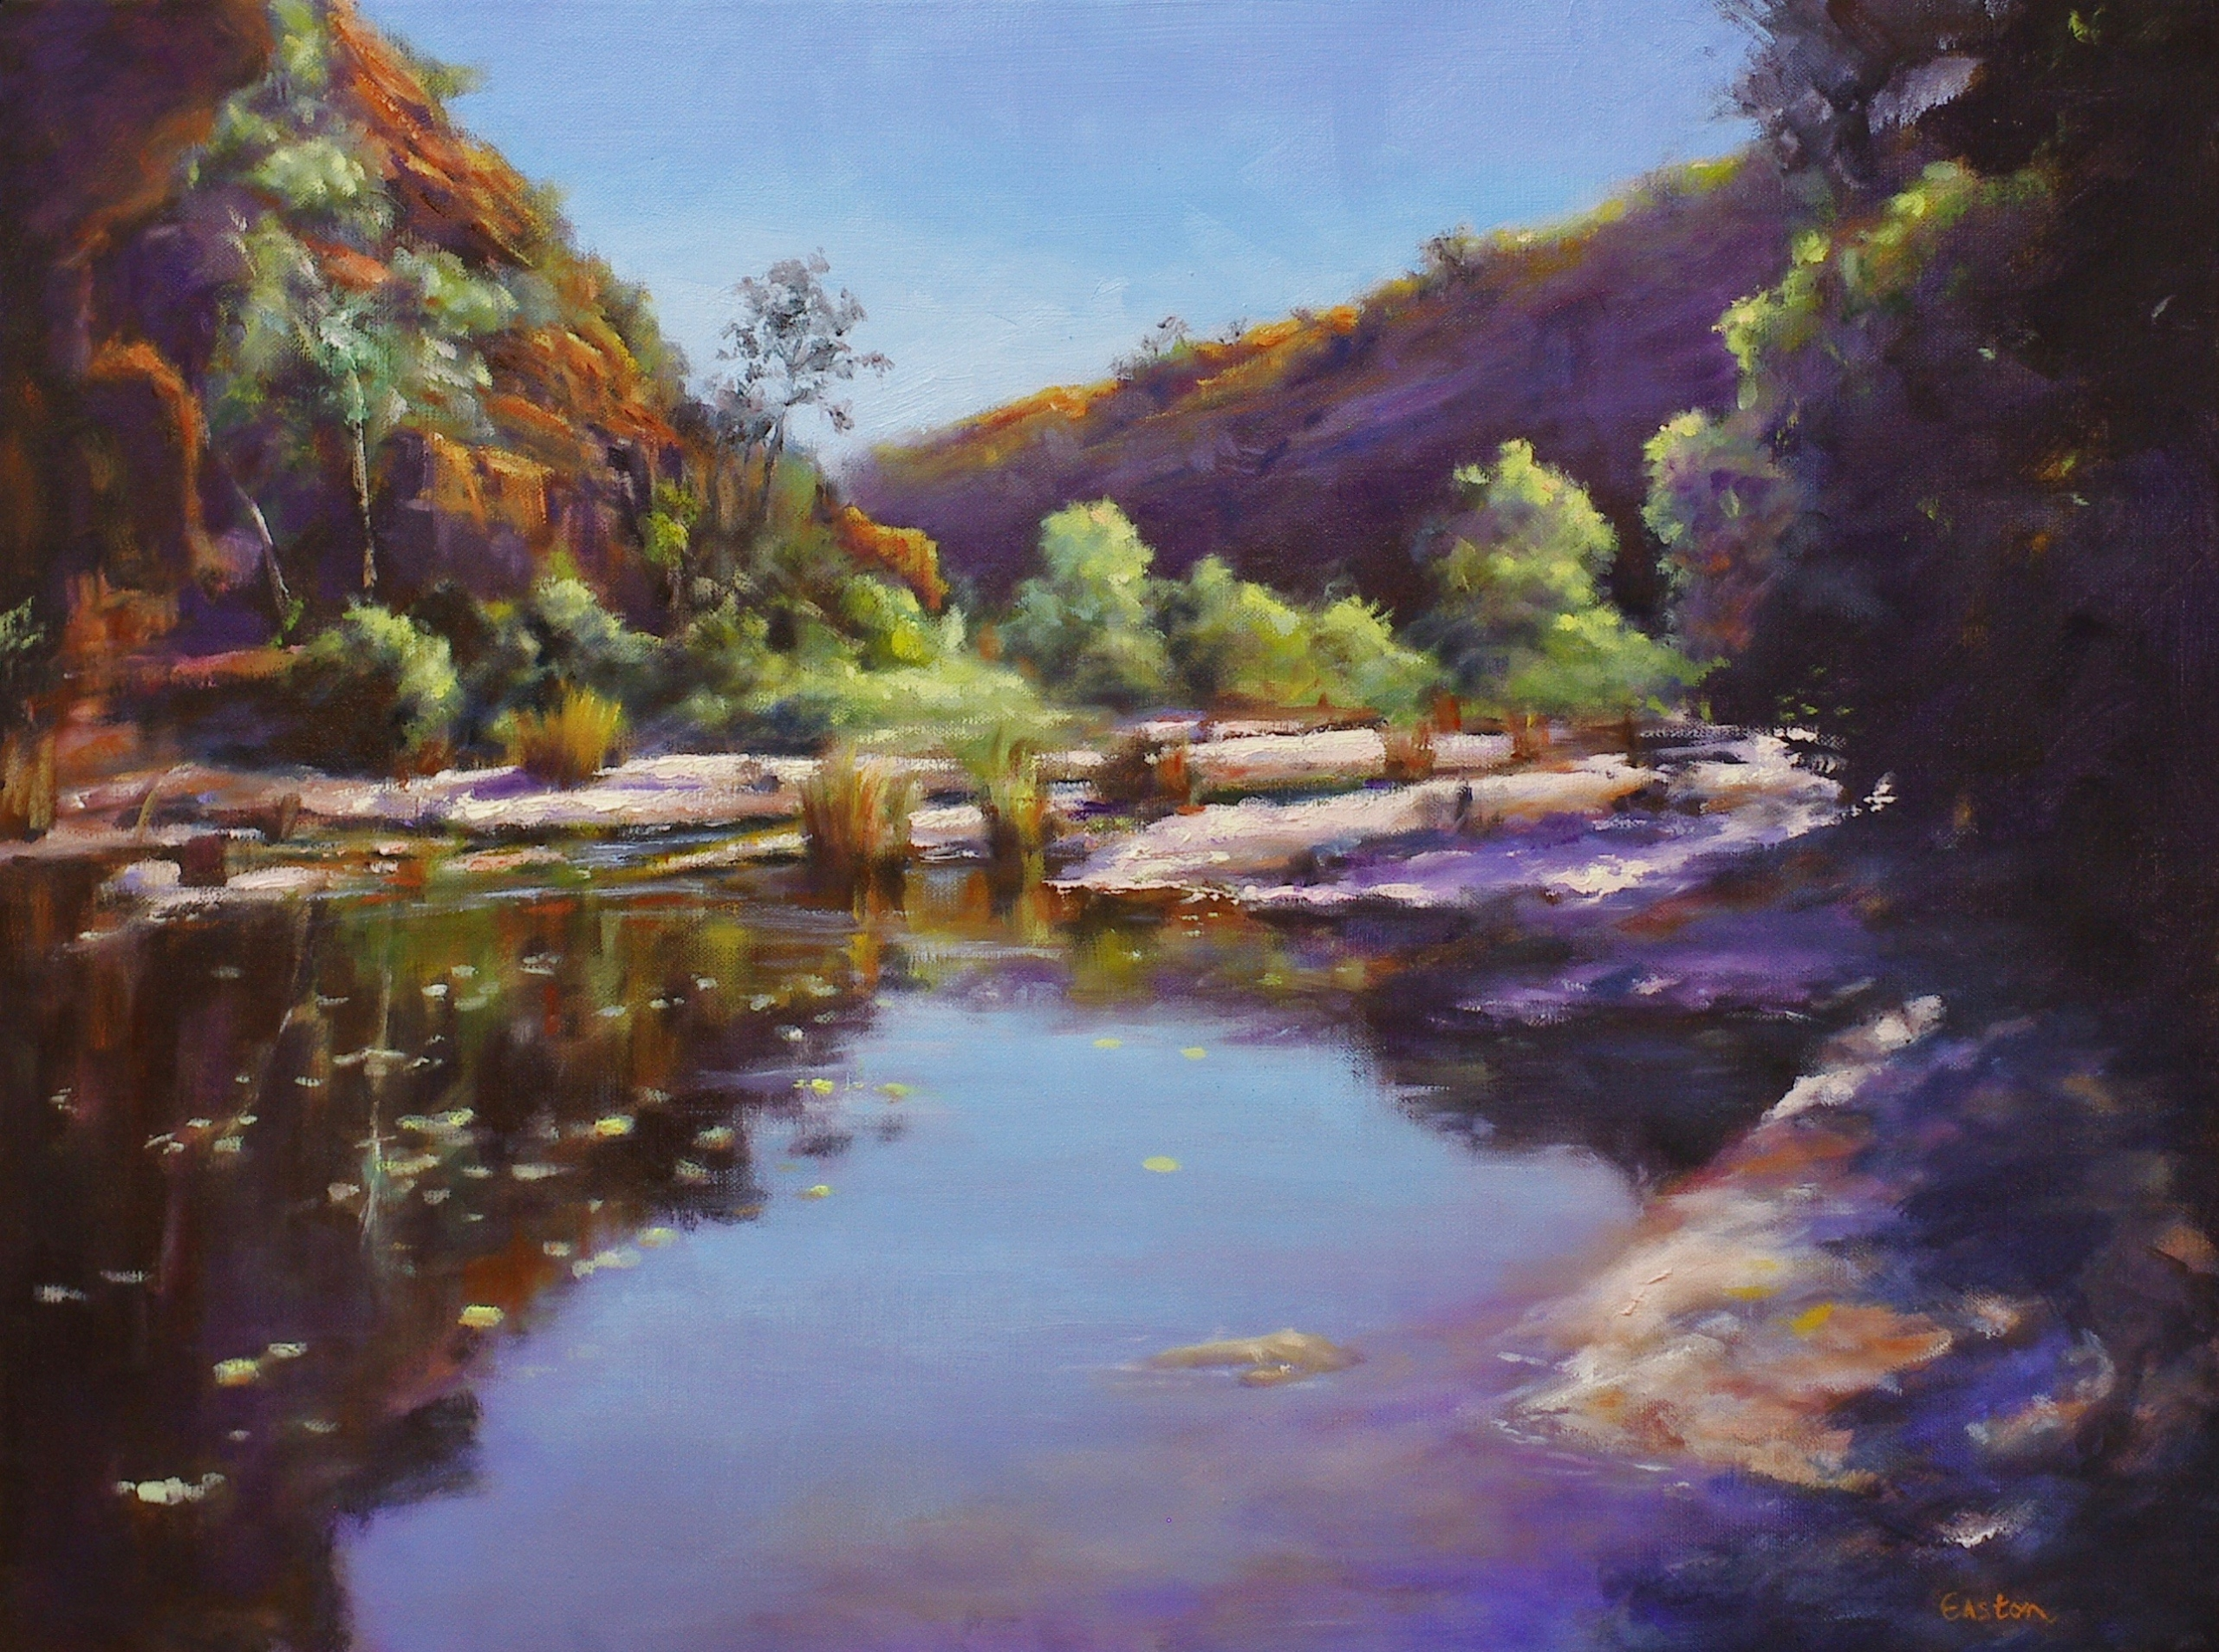 Oil painting Dales Gorge from Fortescue Falls, Western Australia